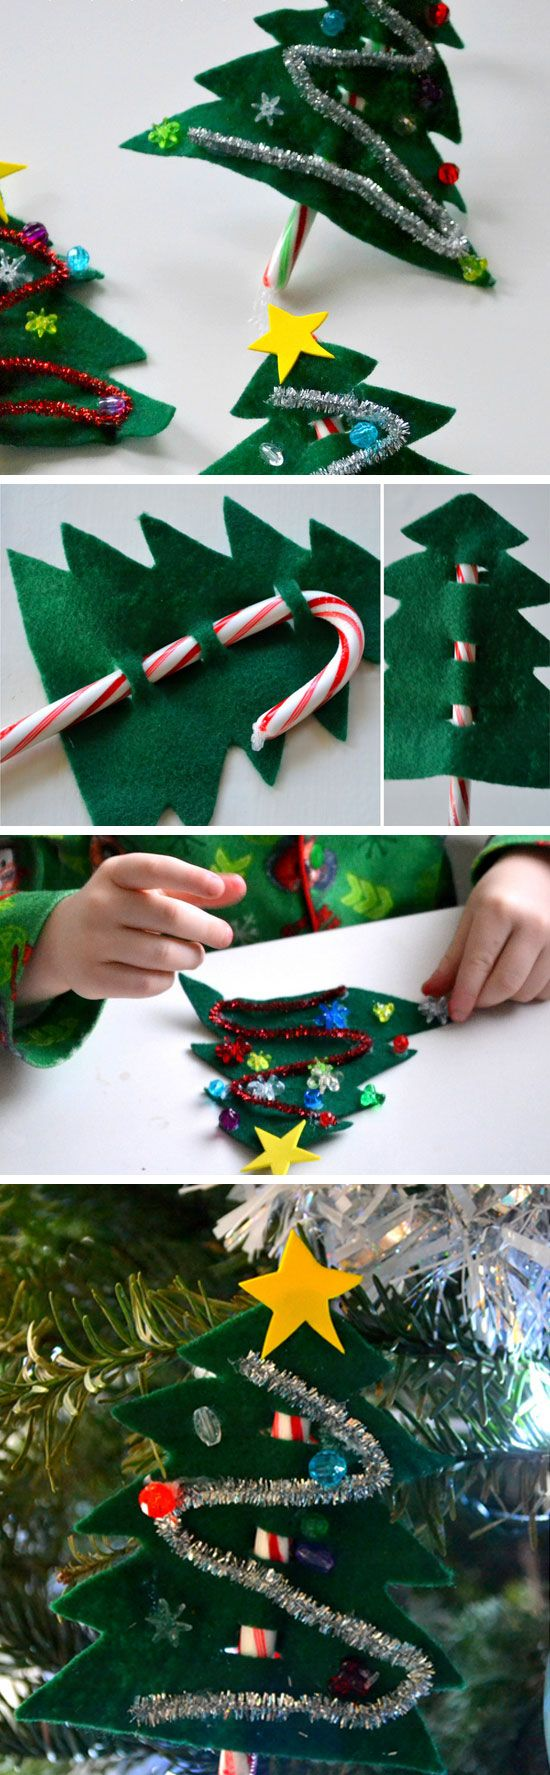 Making christmas decorations in school - Best 25 Picture Ornaments Ideas On Pinterest Photo Christmas Ornaments Diy Ornaments And Christmas Ornaments With Pictures